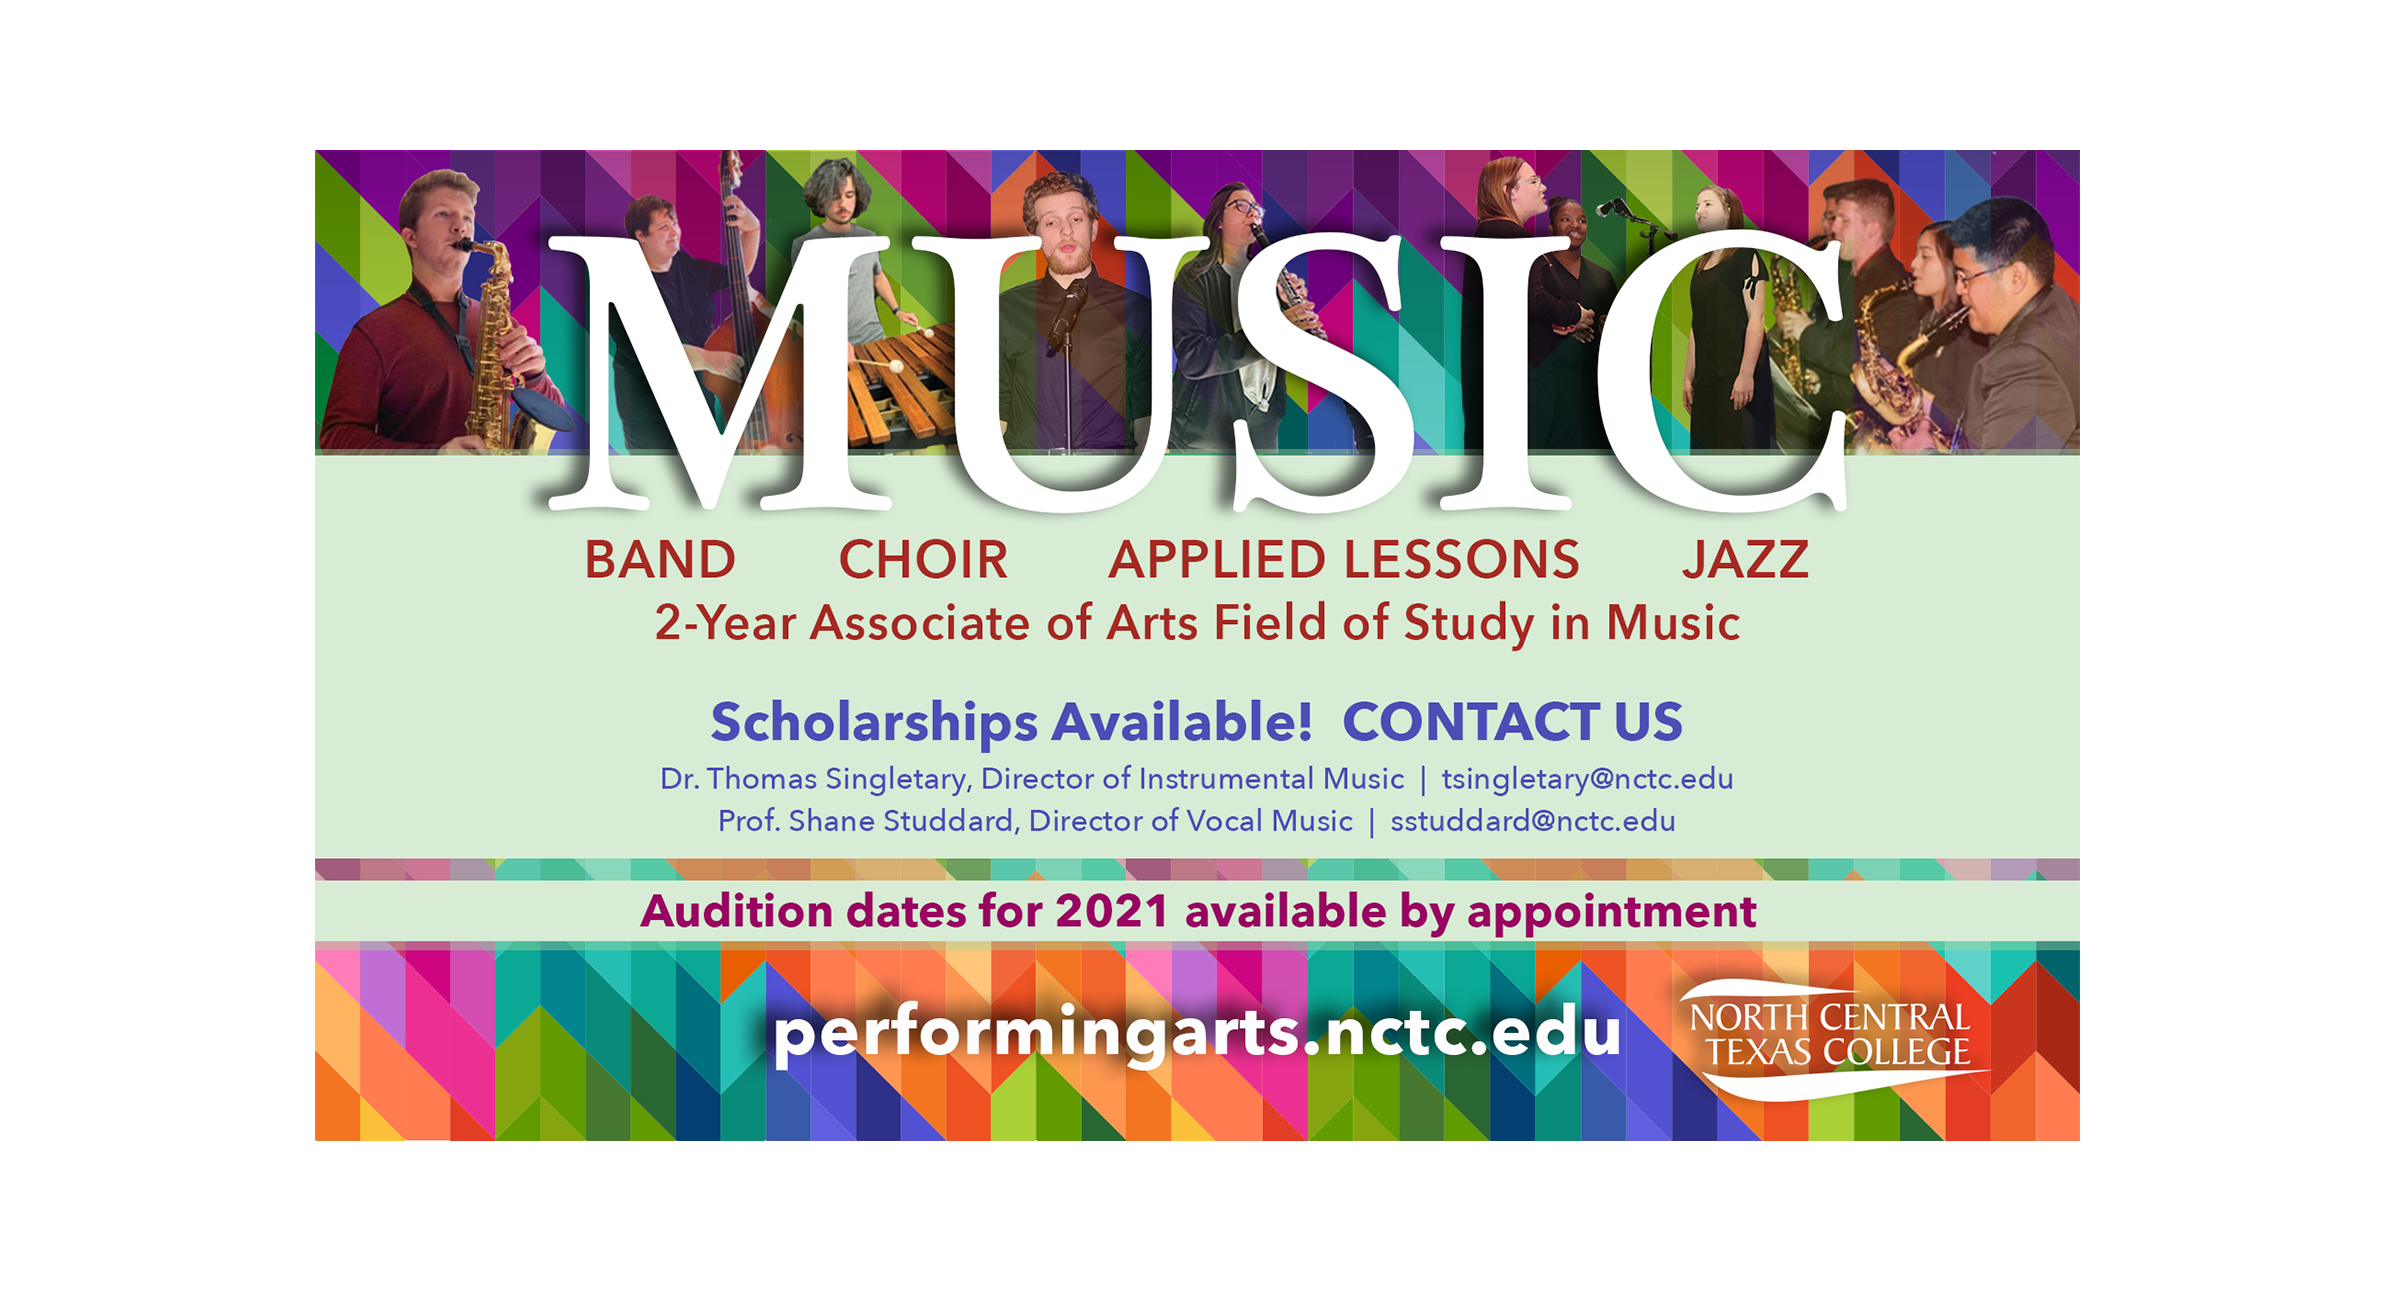 Music Programs at NCTC